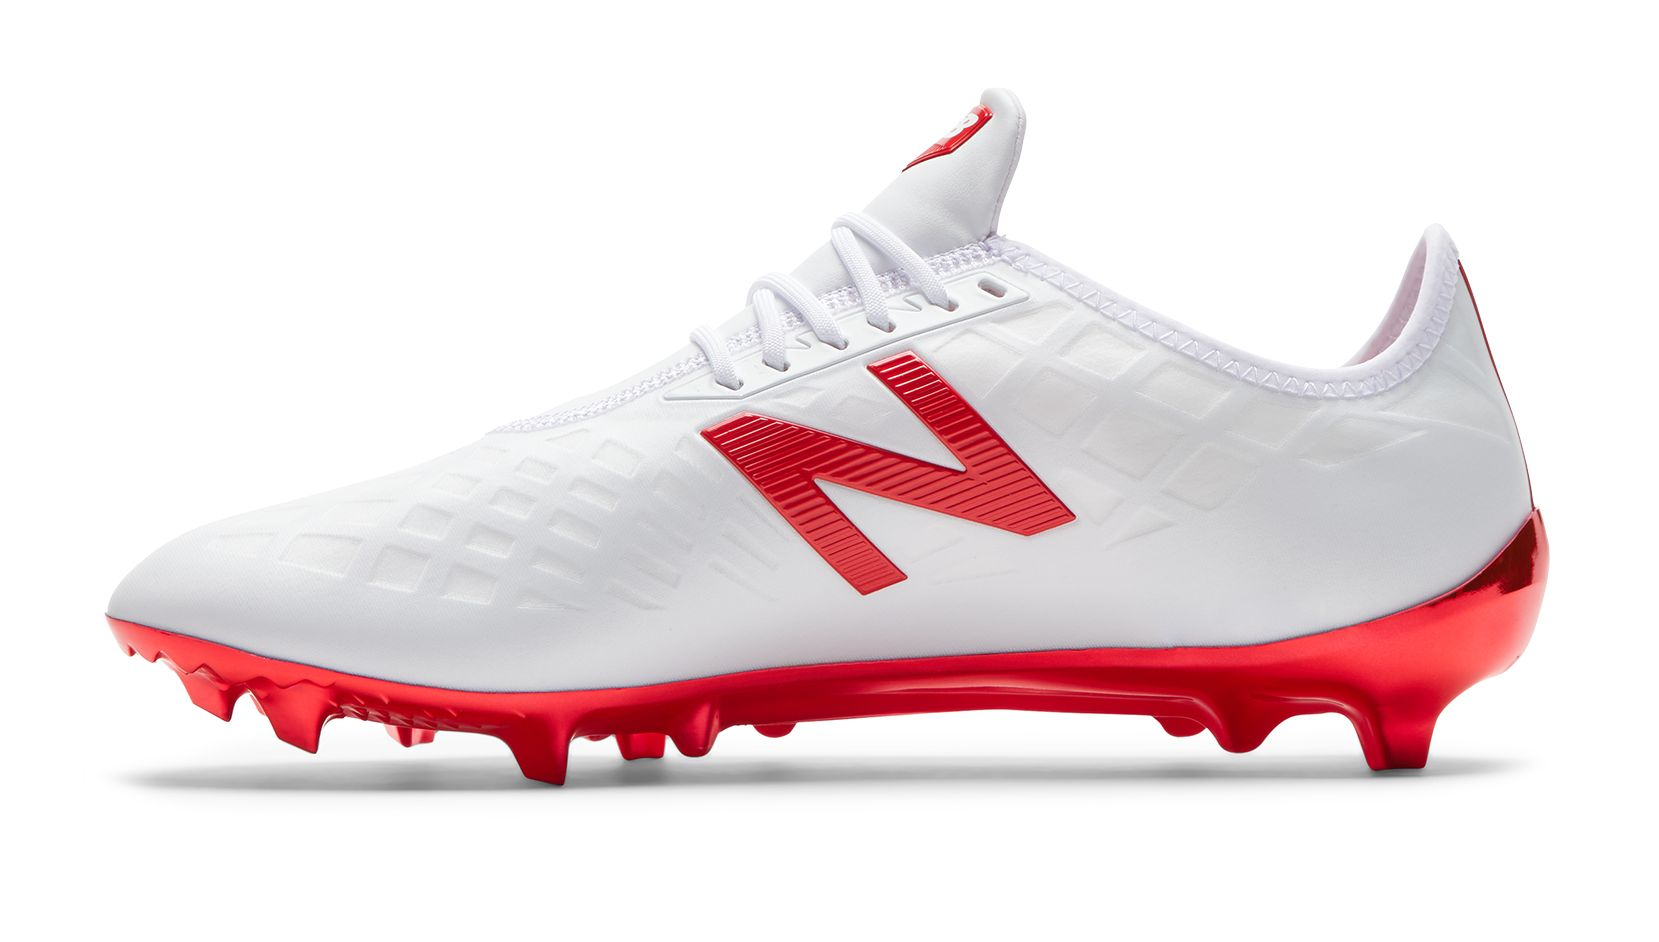 Chaussures de Football New Balance Furon 4 Pro FG